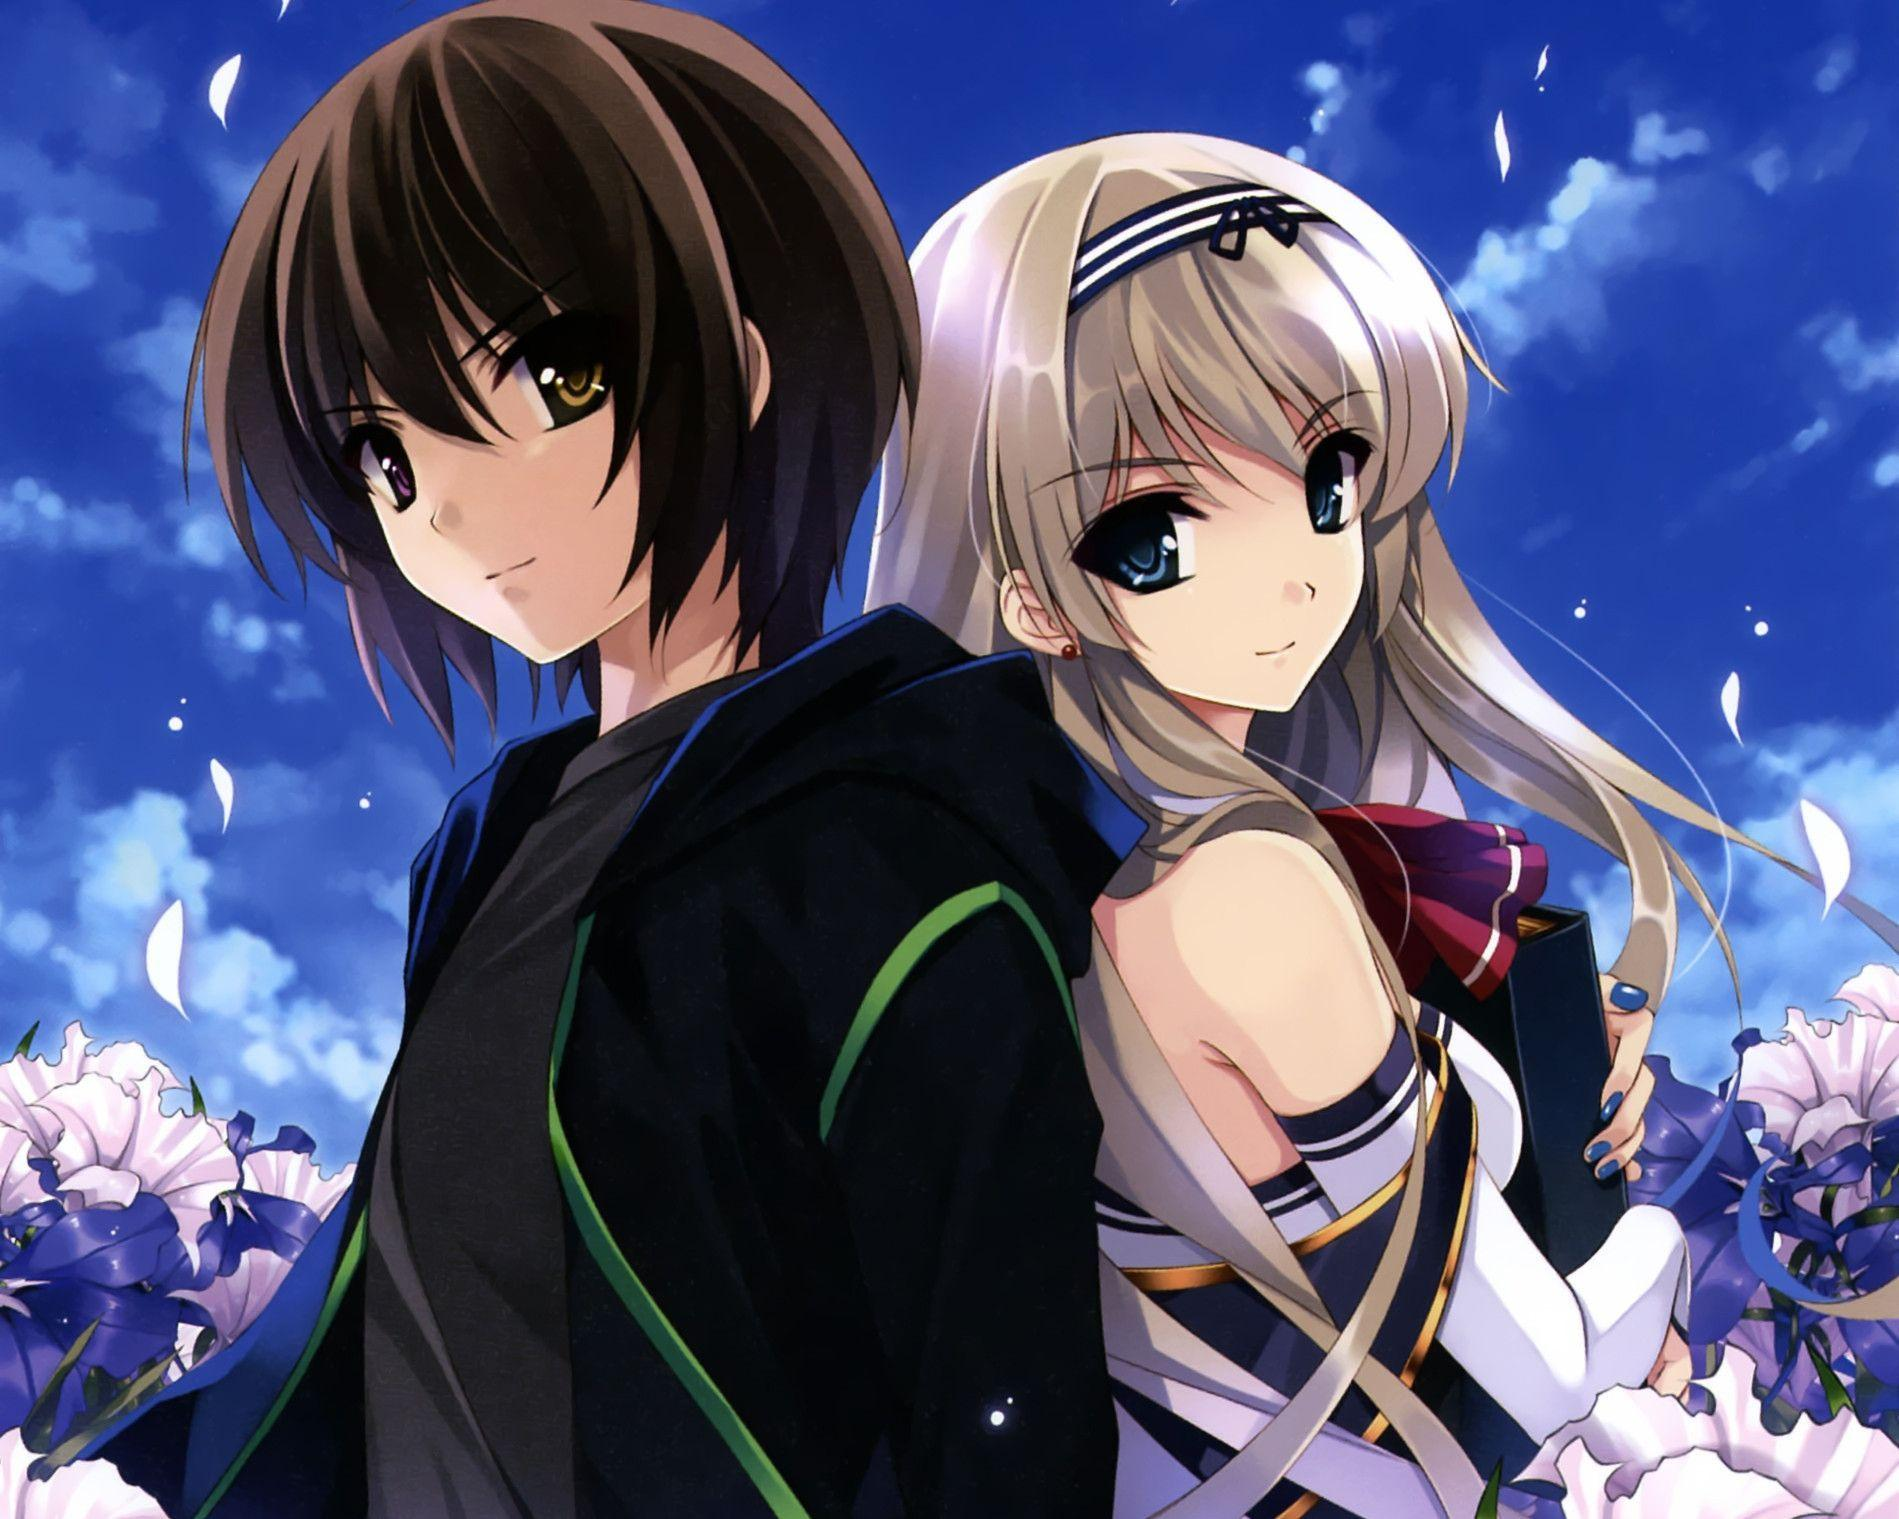 Cute Anime Couple Wallpapers 1899x1519